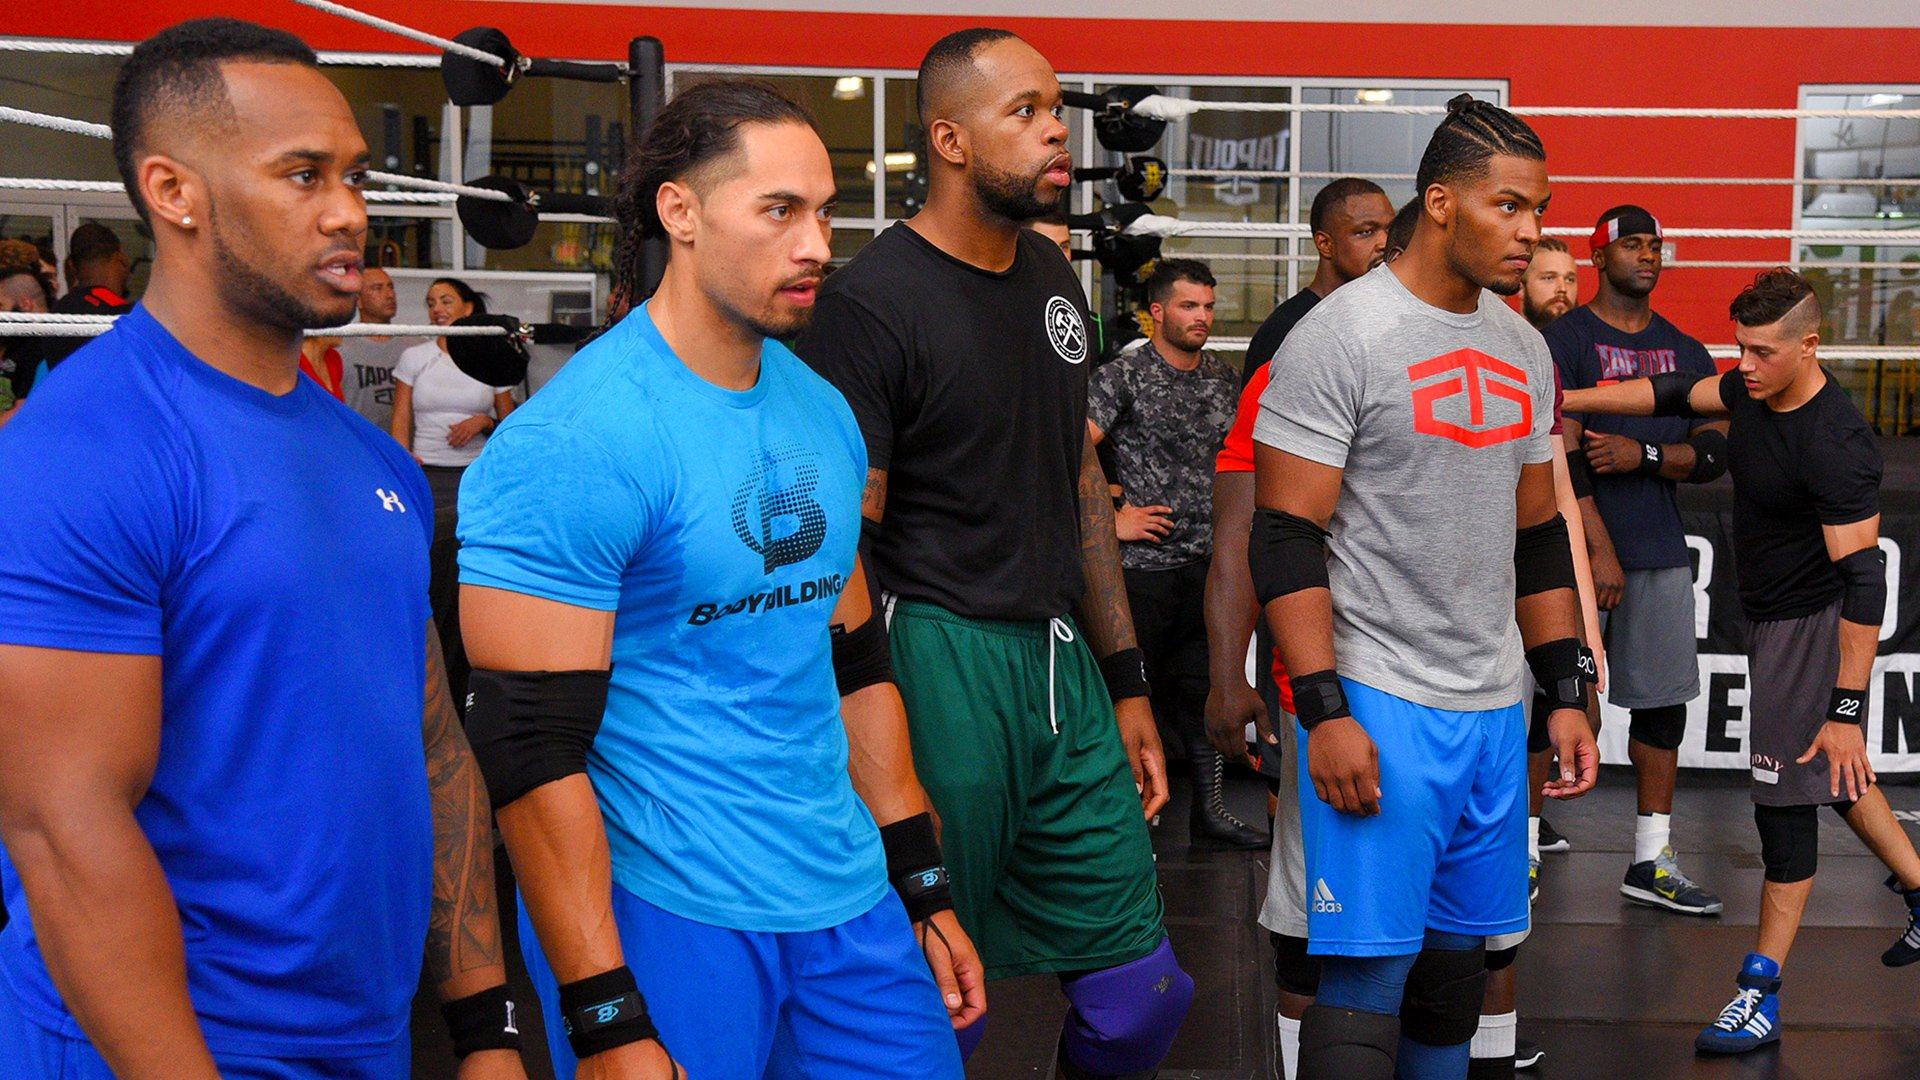 WWE Performance Center tryout, June 2017: photos